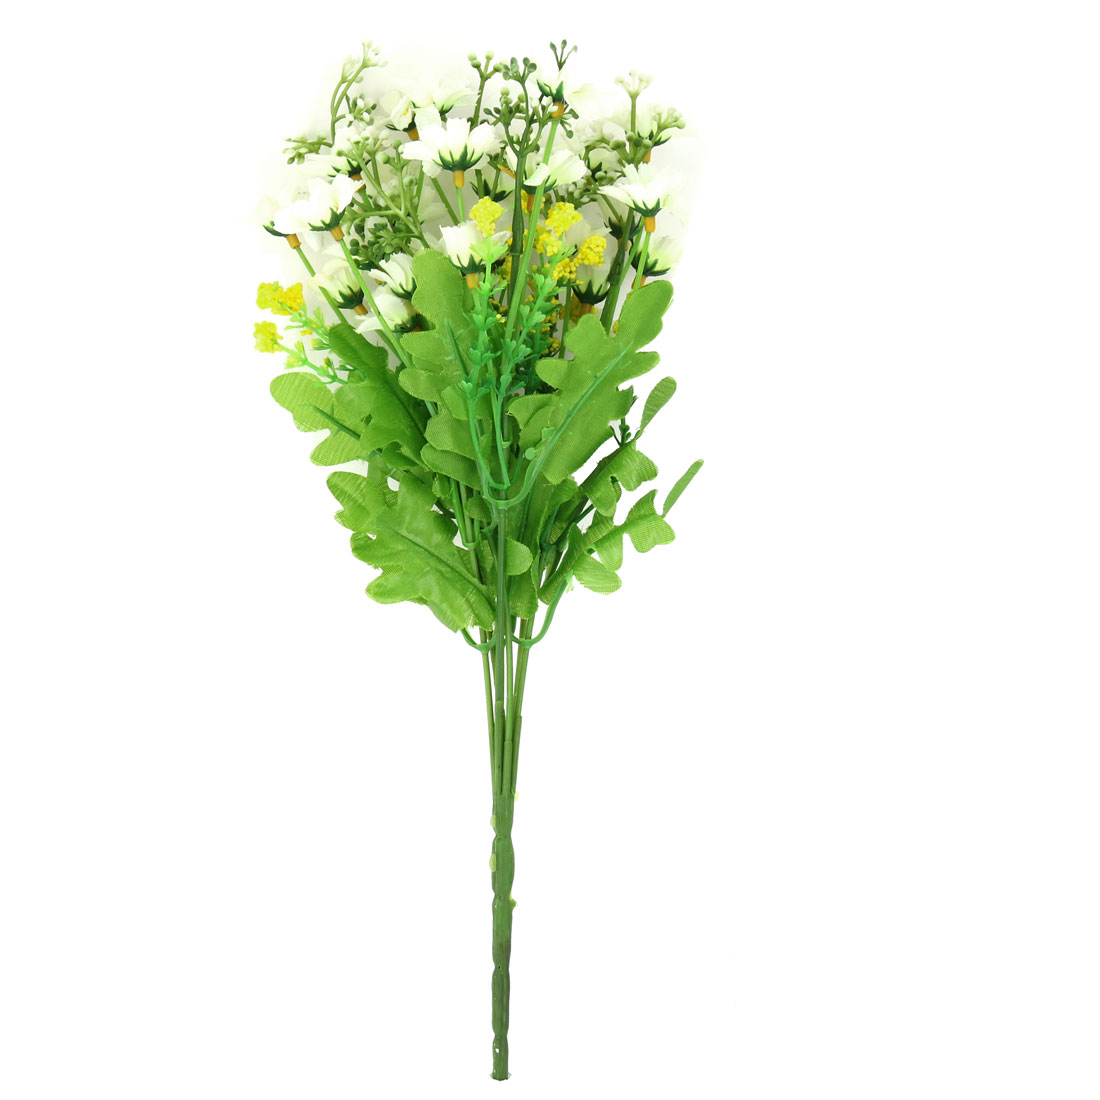 Home Office Longlasting Decor Small White Daisy Emulational Artificial Flower